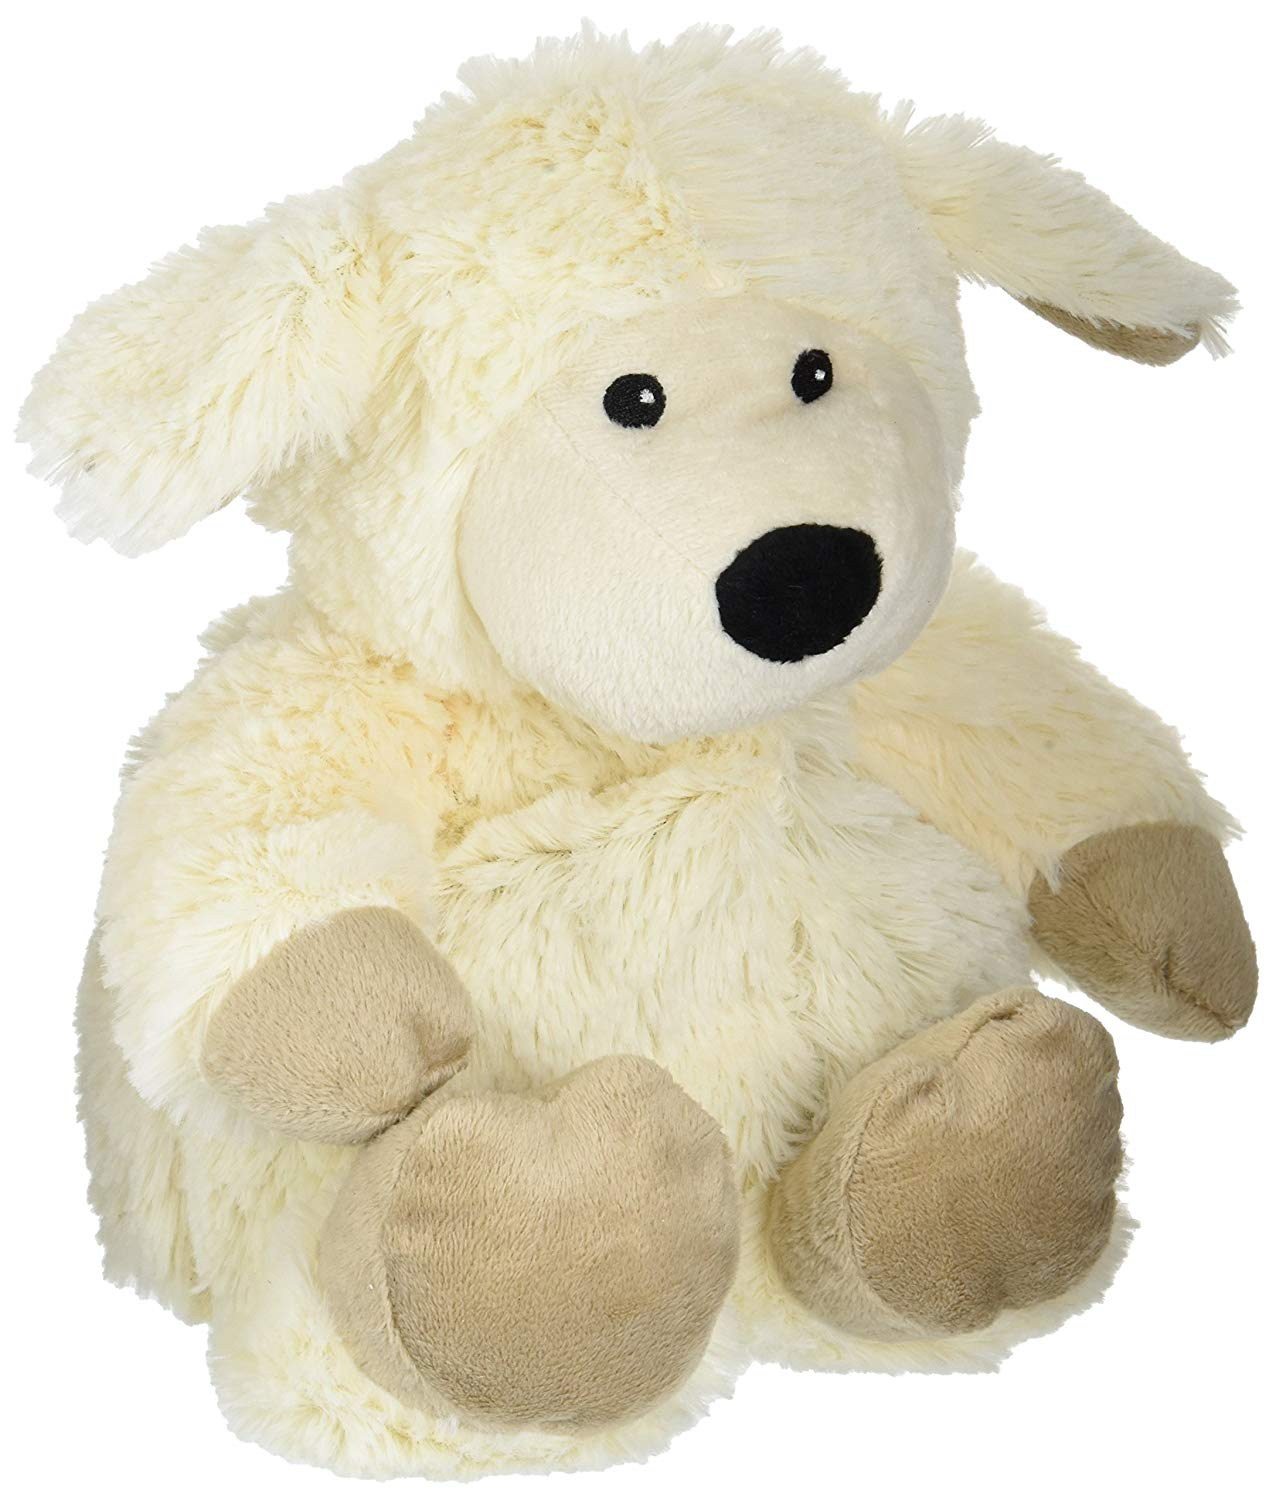 Warmies Microwavable Sheep Doll